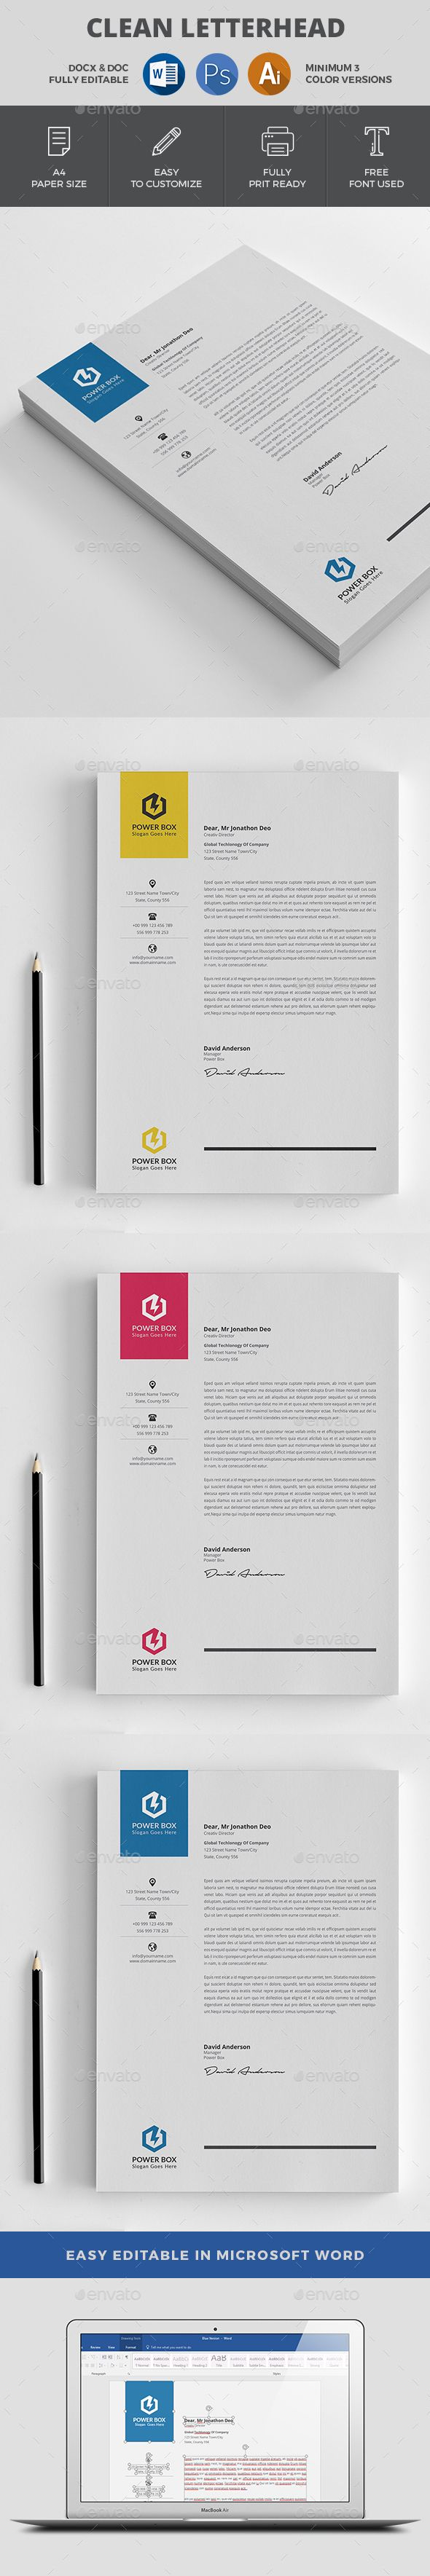 Letterhead Stationery Print Templates Download here